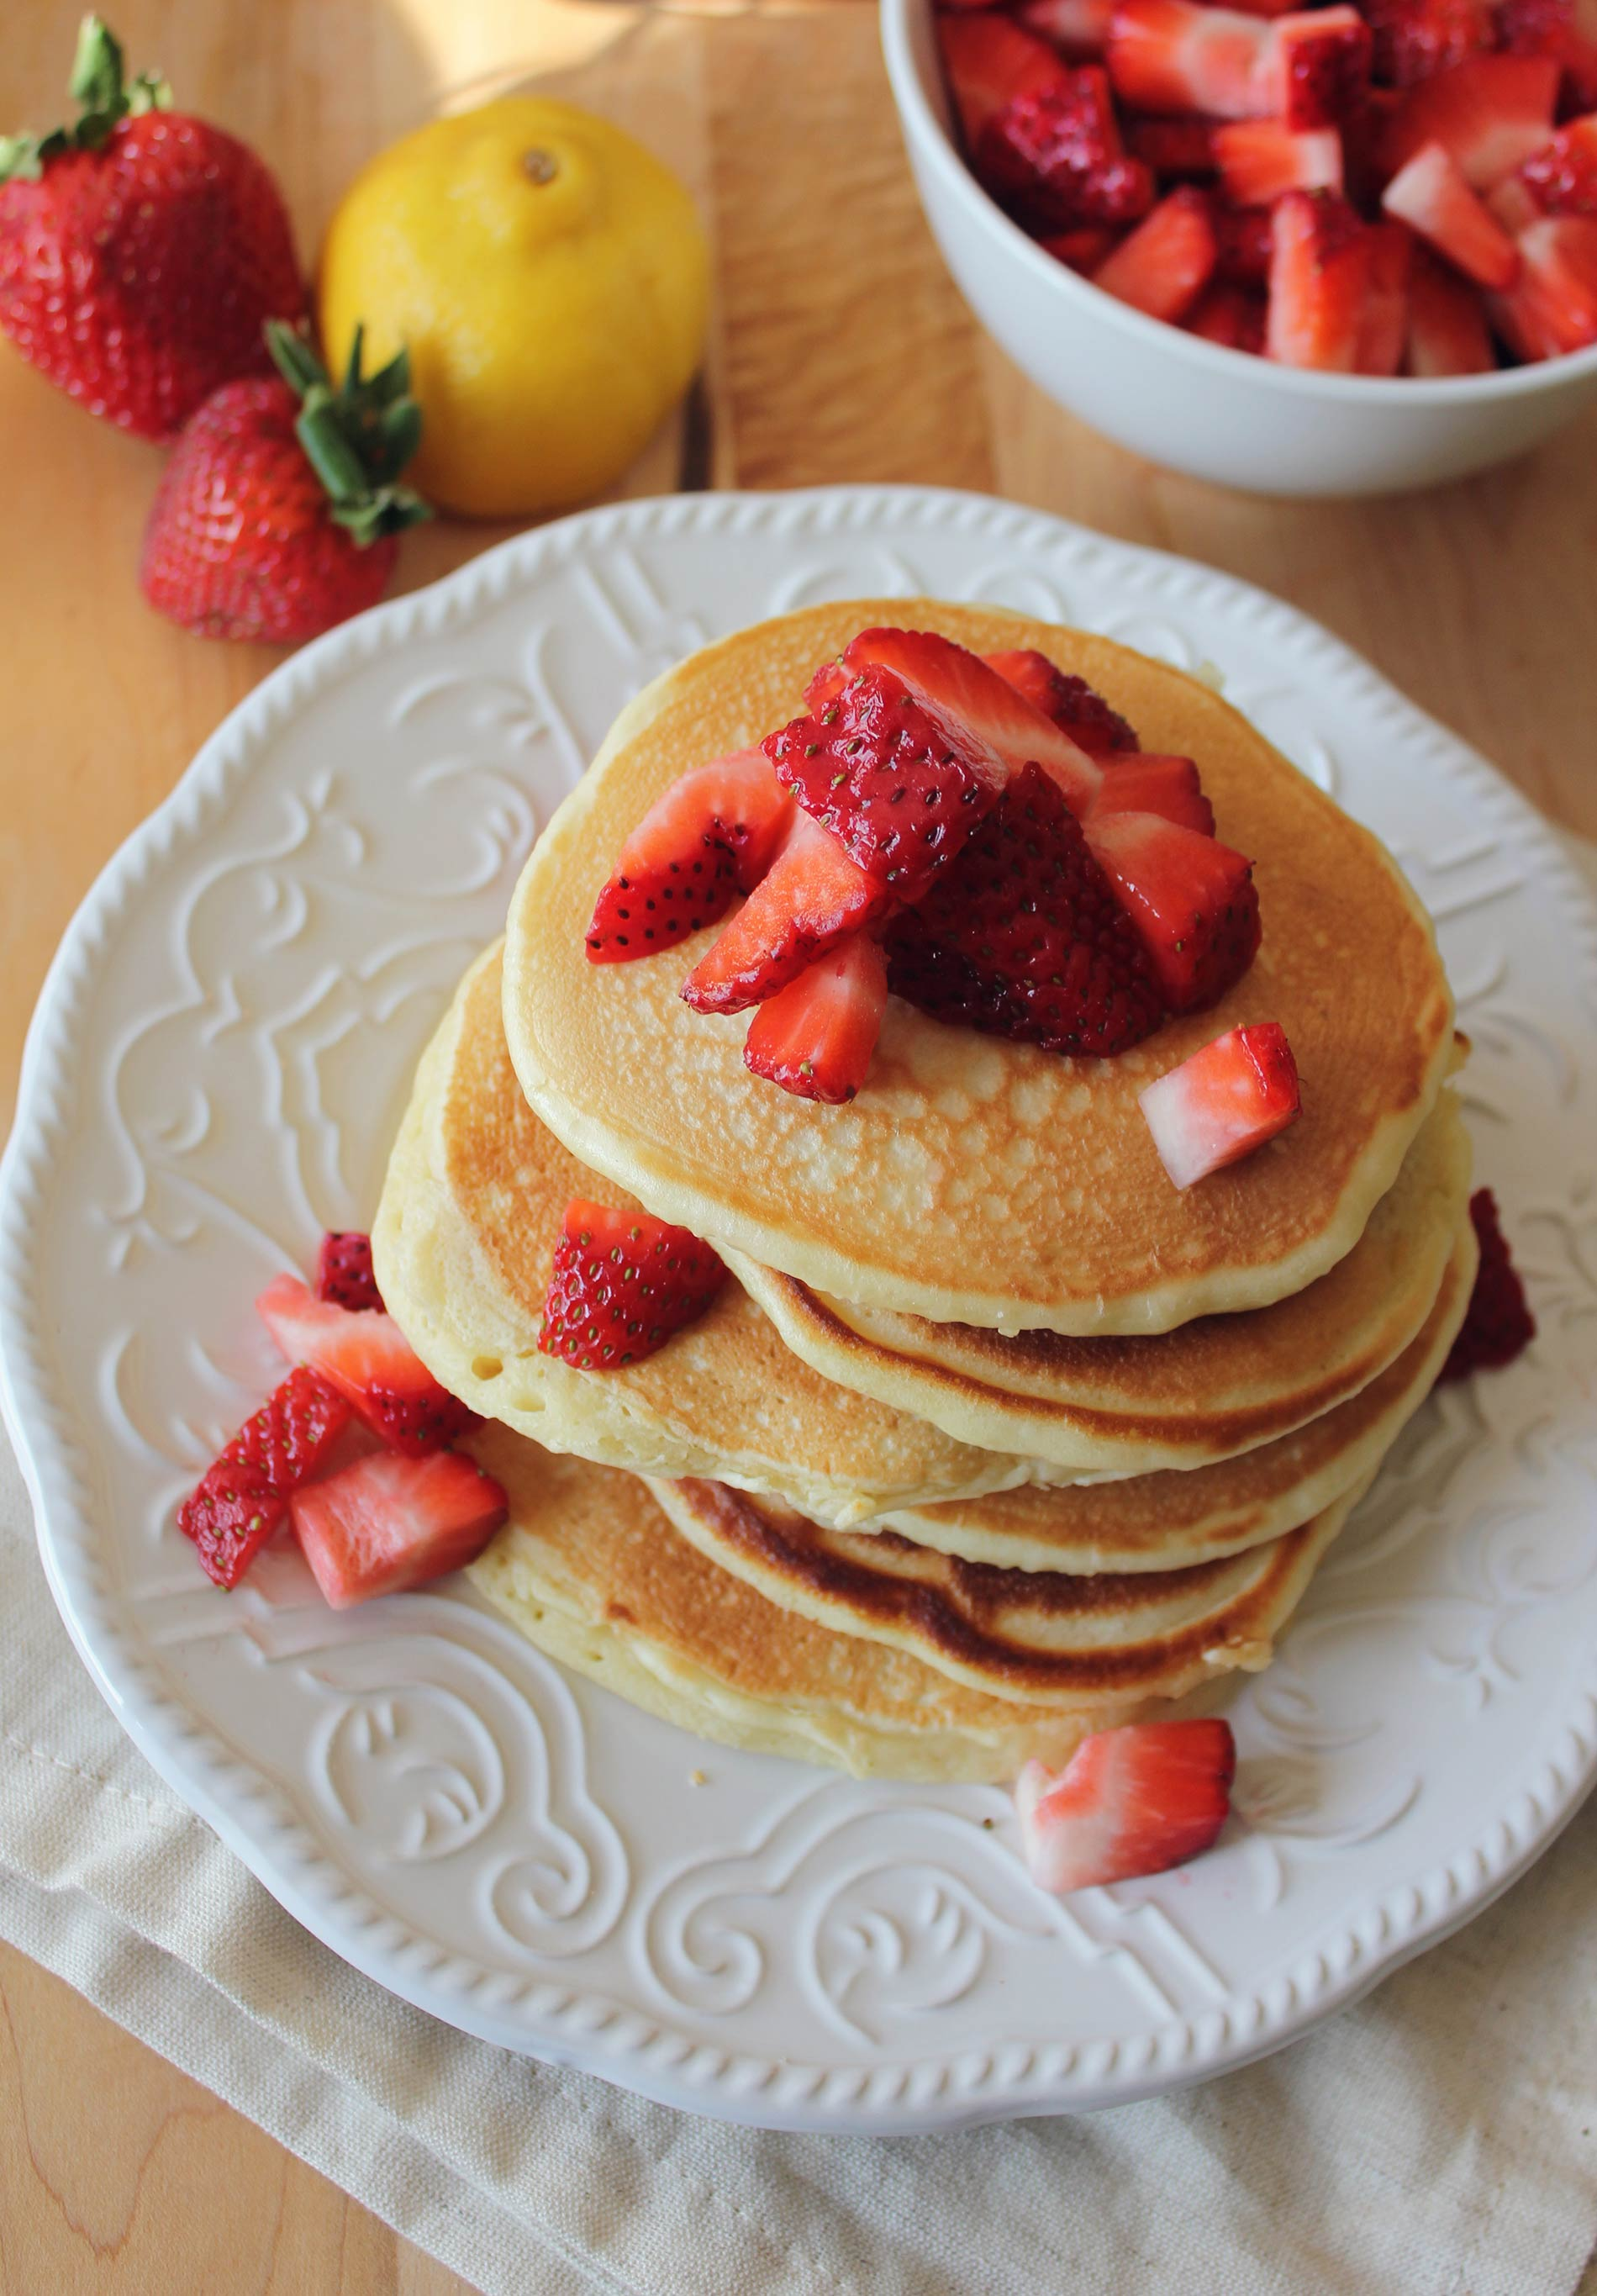 Lemon Pancakes Topped with Strawberries